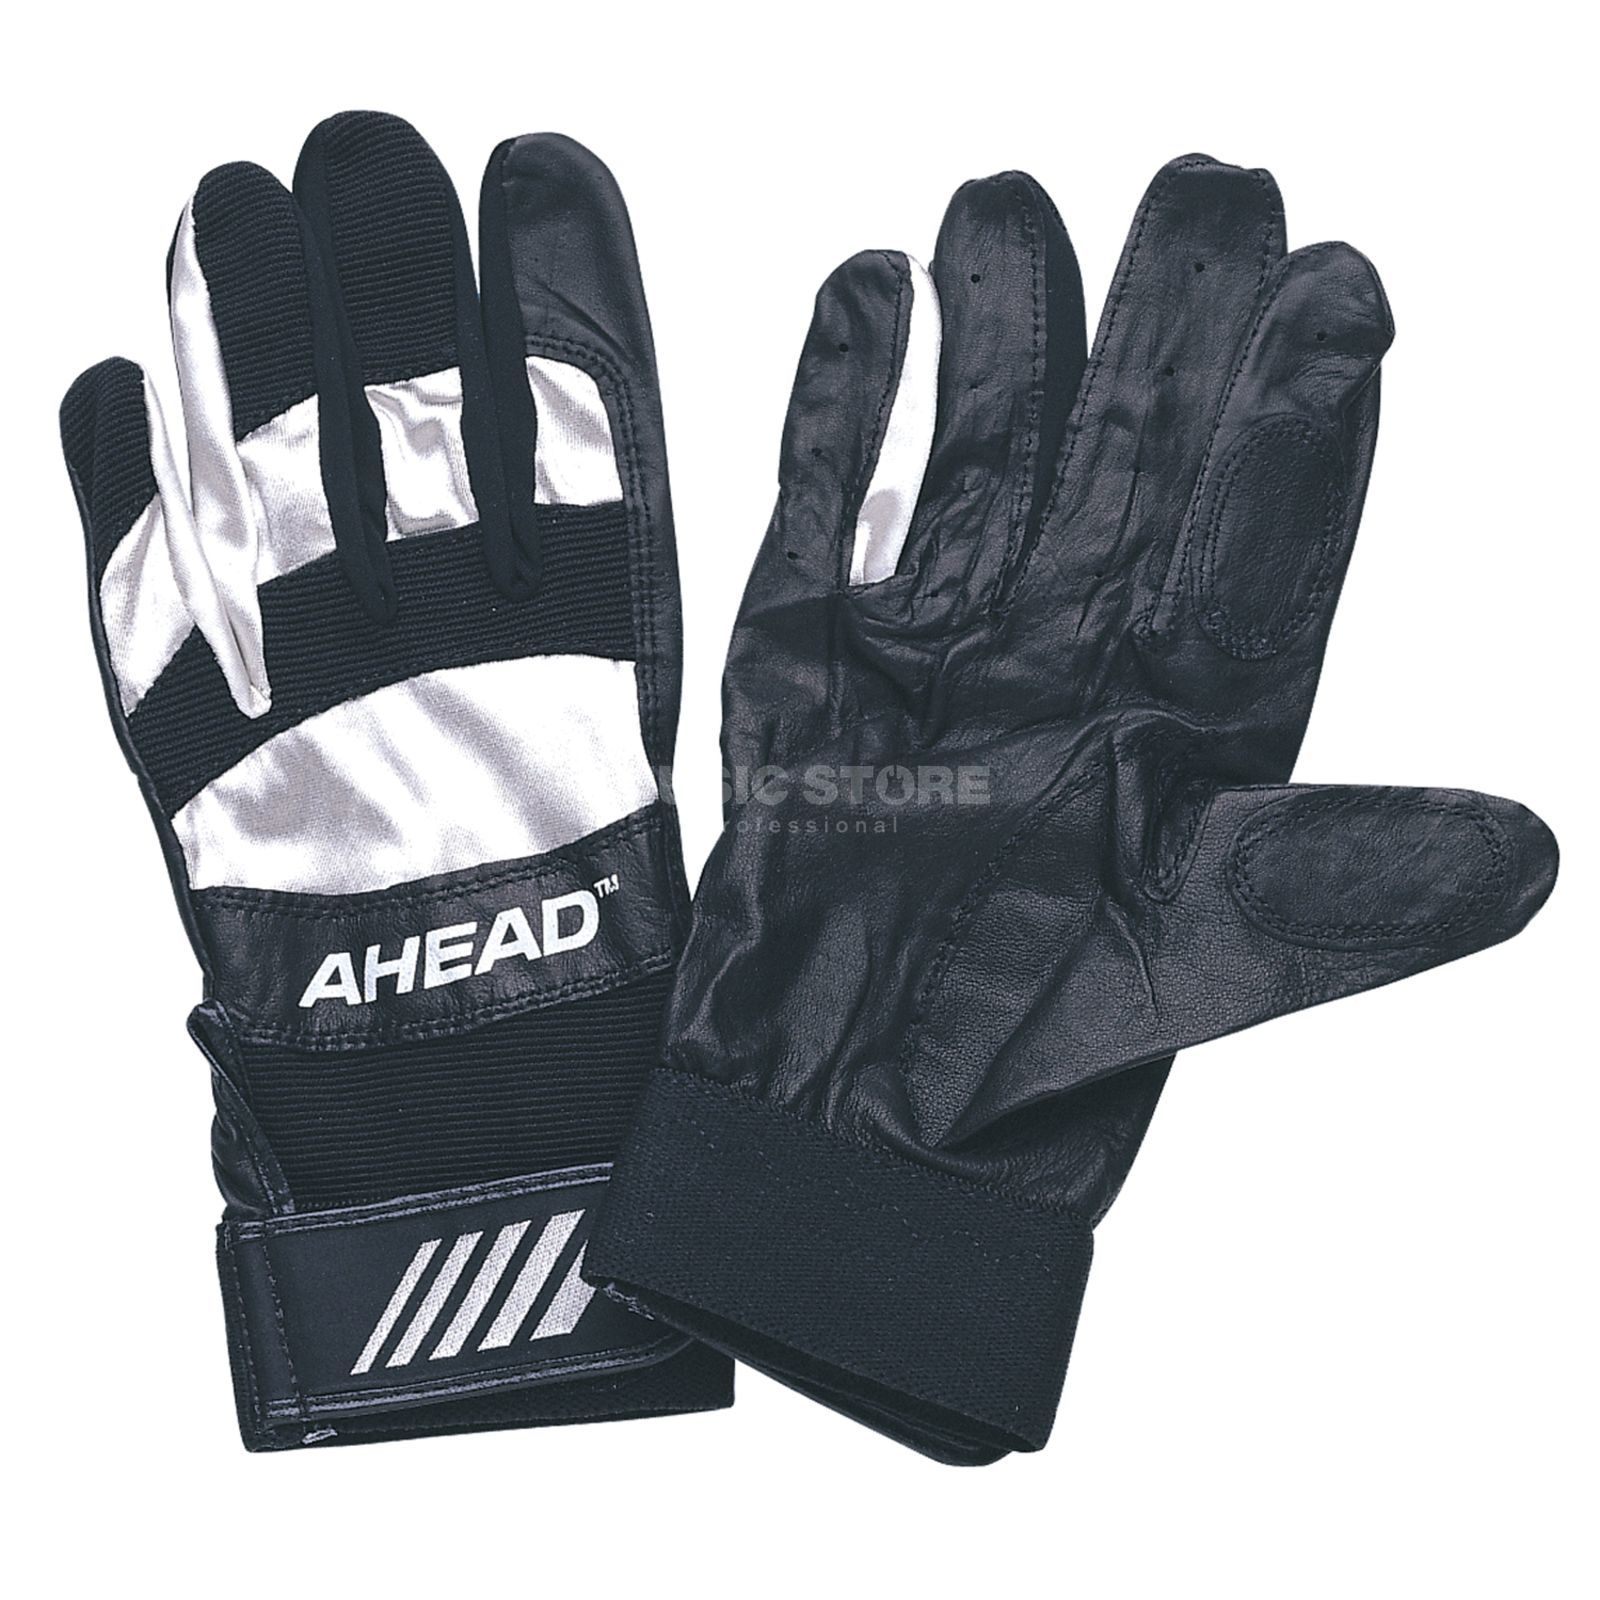 Ahead Sticks Drummer Handschuhe GLM, Medium Produktbild